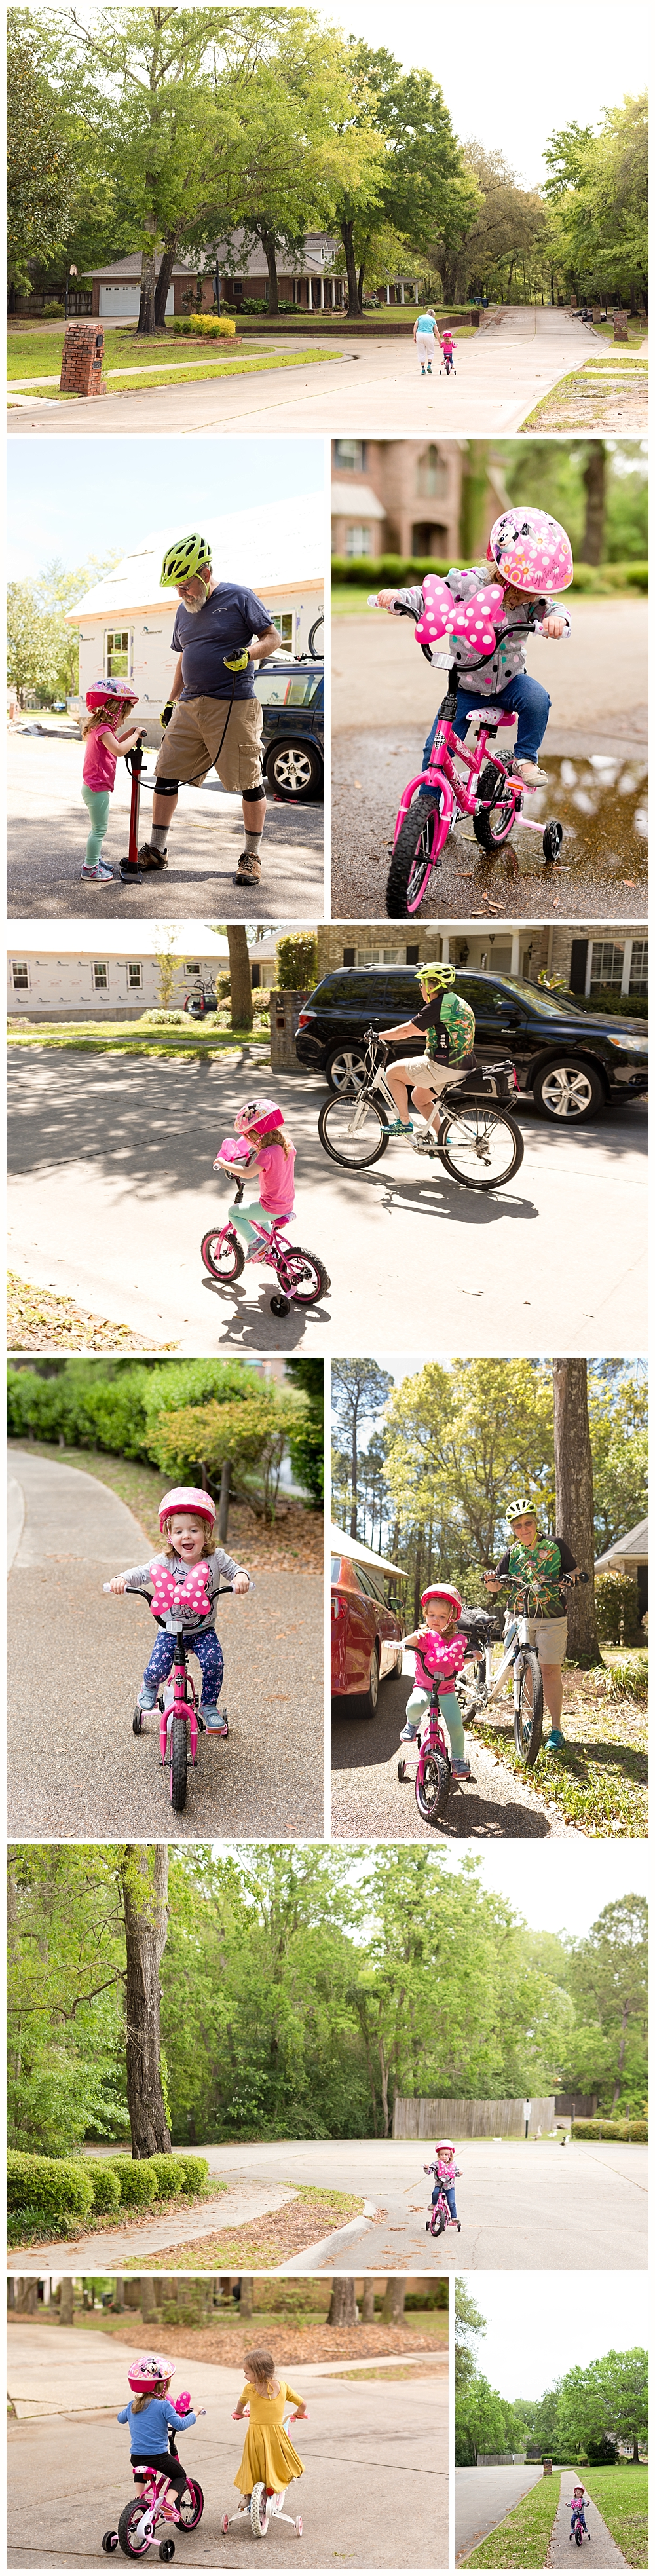 three-year-old girl riding bicycle in neighborhood - Ocean Springs lifestyle photography